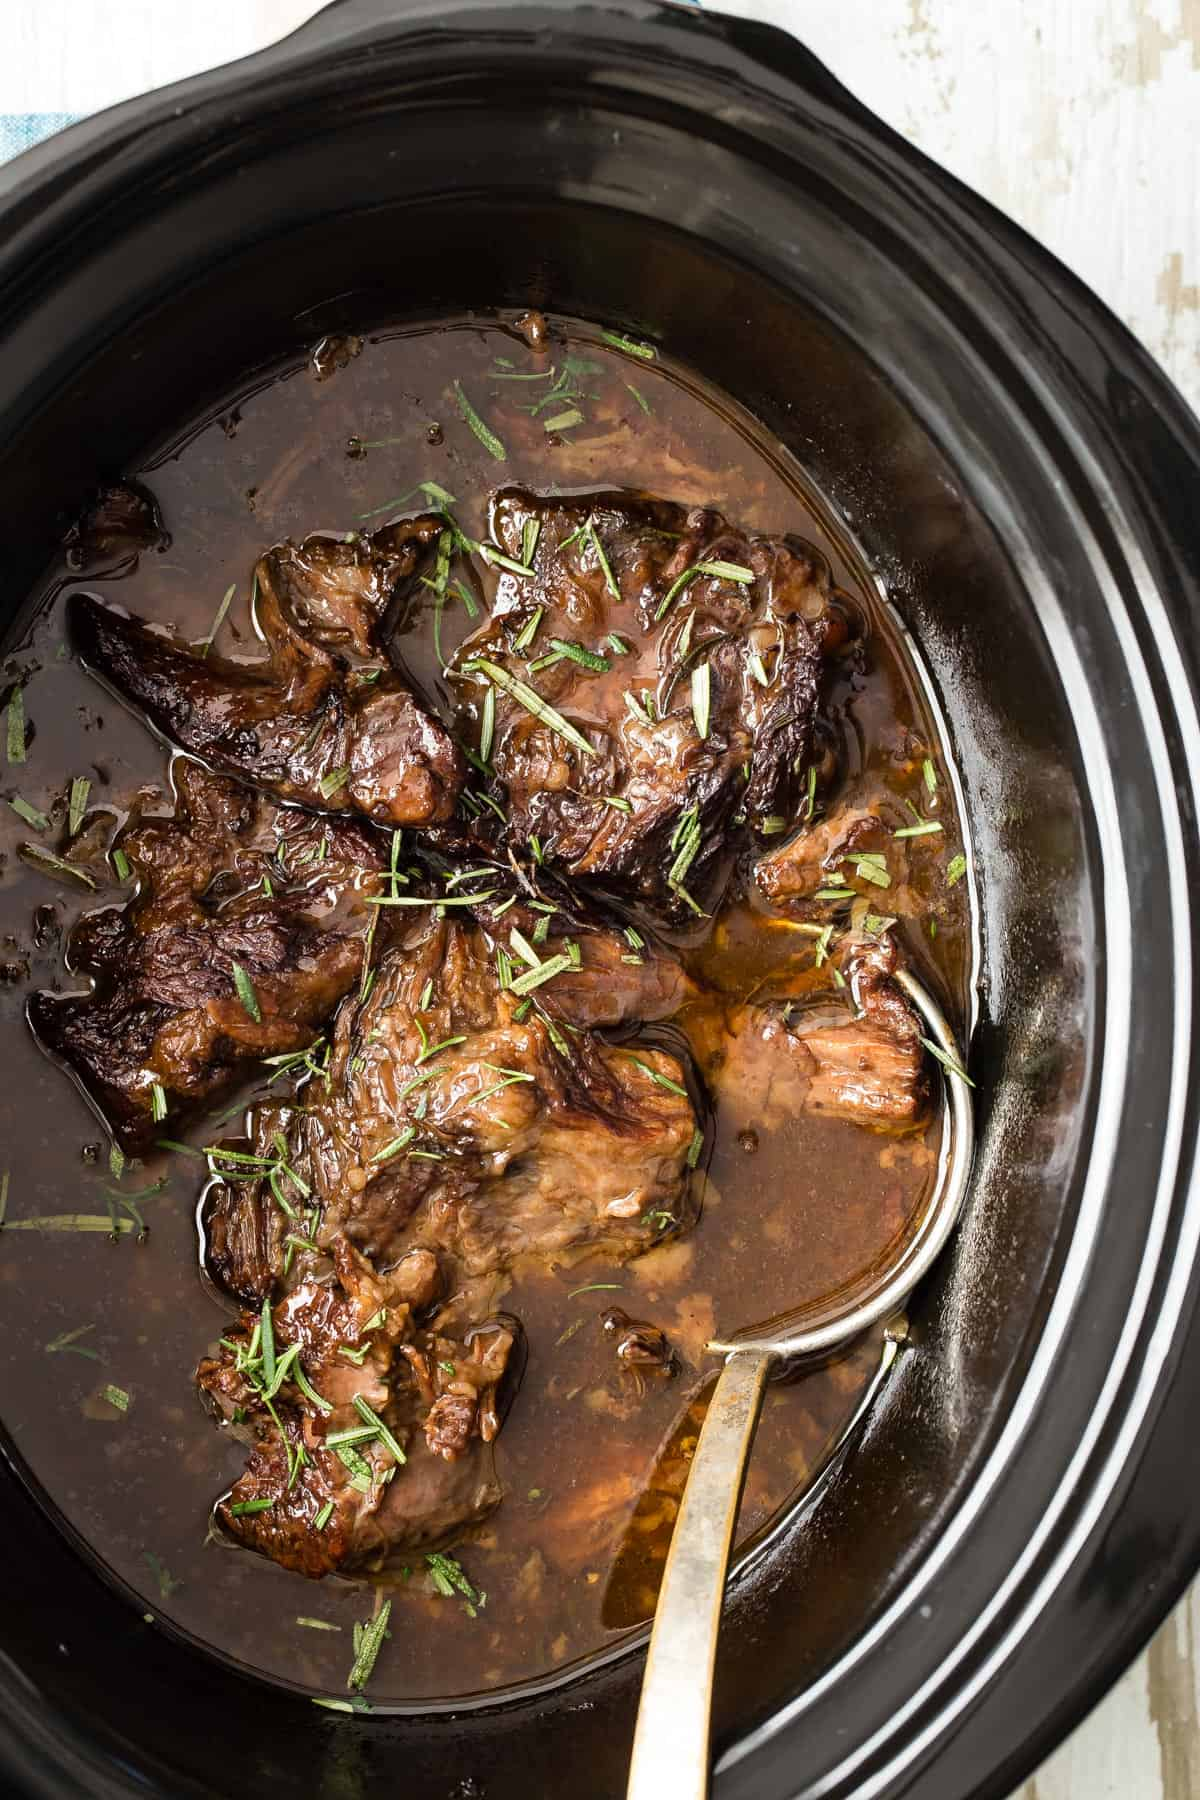 This Slow Cooker Shredded Orange Beef is so tender it might just melt in your mouth. With orange juice, blackberry preserves and beef stock.